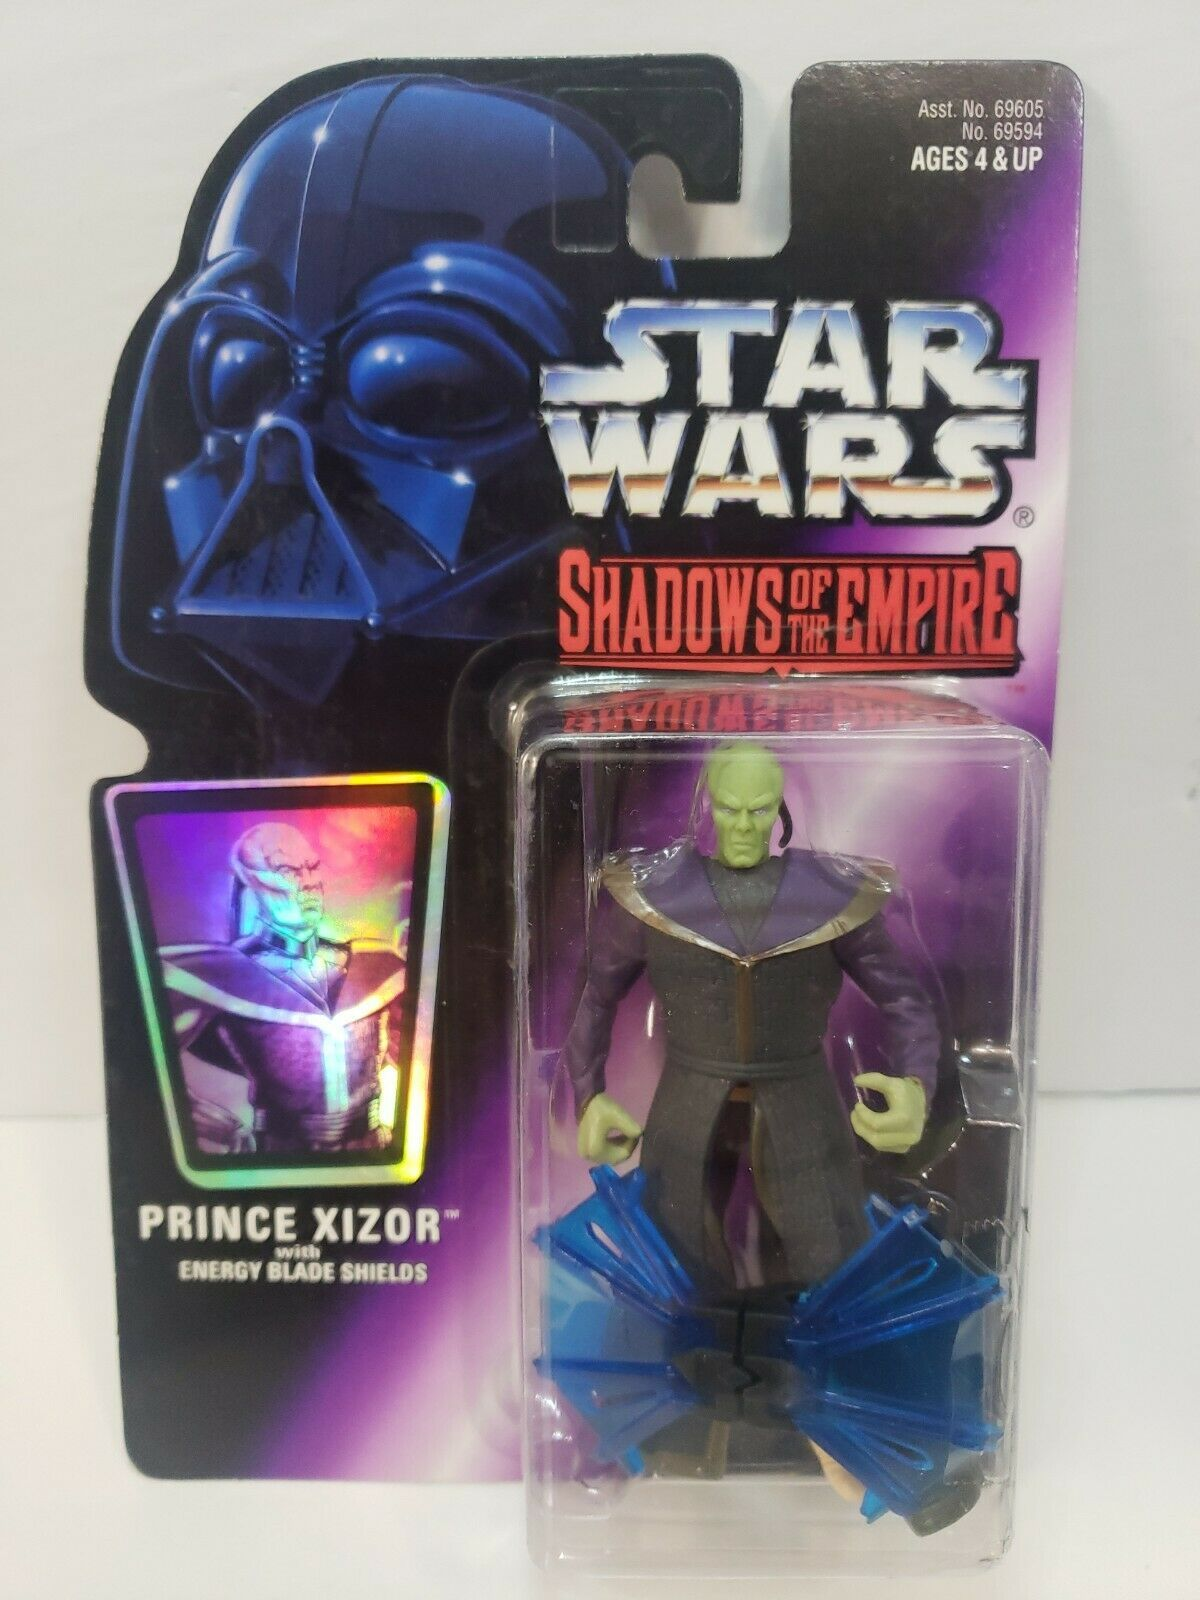 Primary image for Hasbro Star Wars: Prince Xizor w/ Energy Blade Shields - 1996 SOTE Action Figure